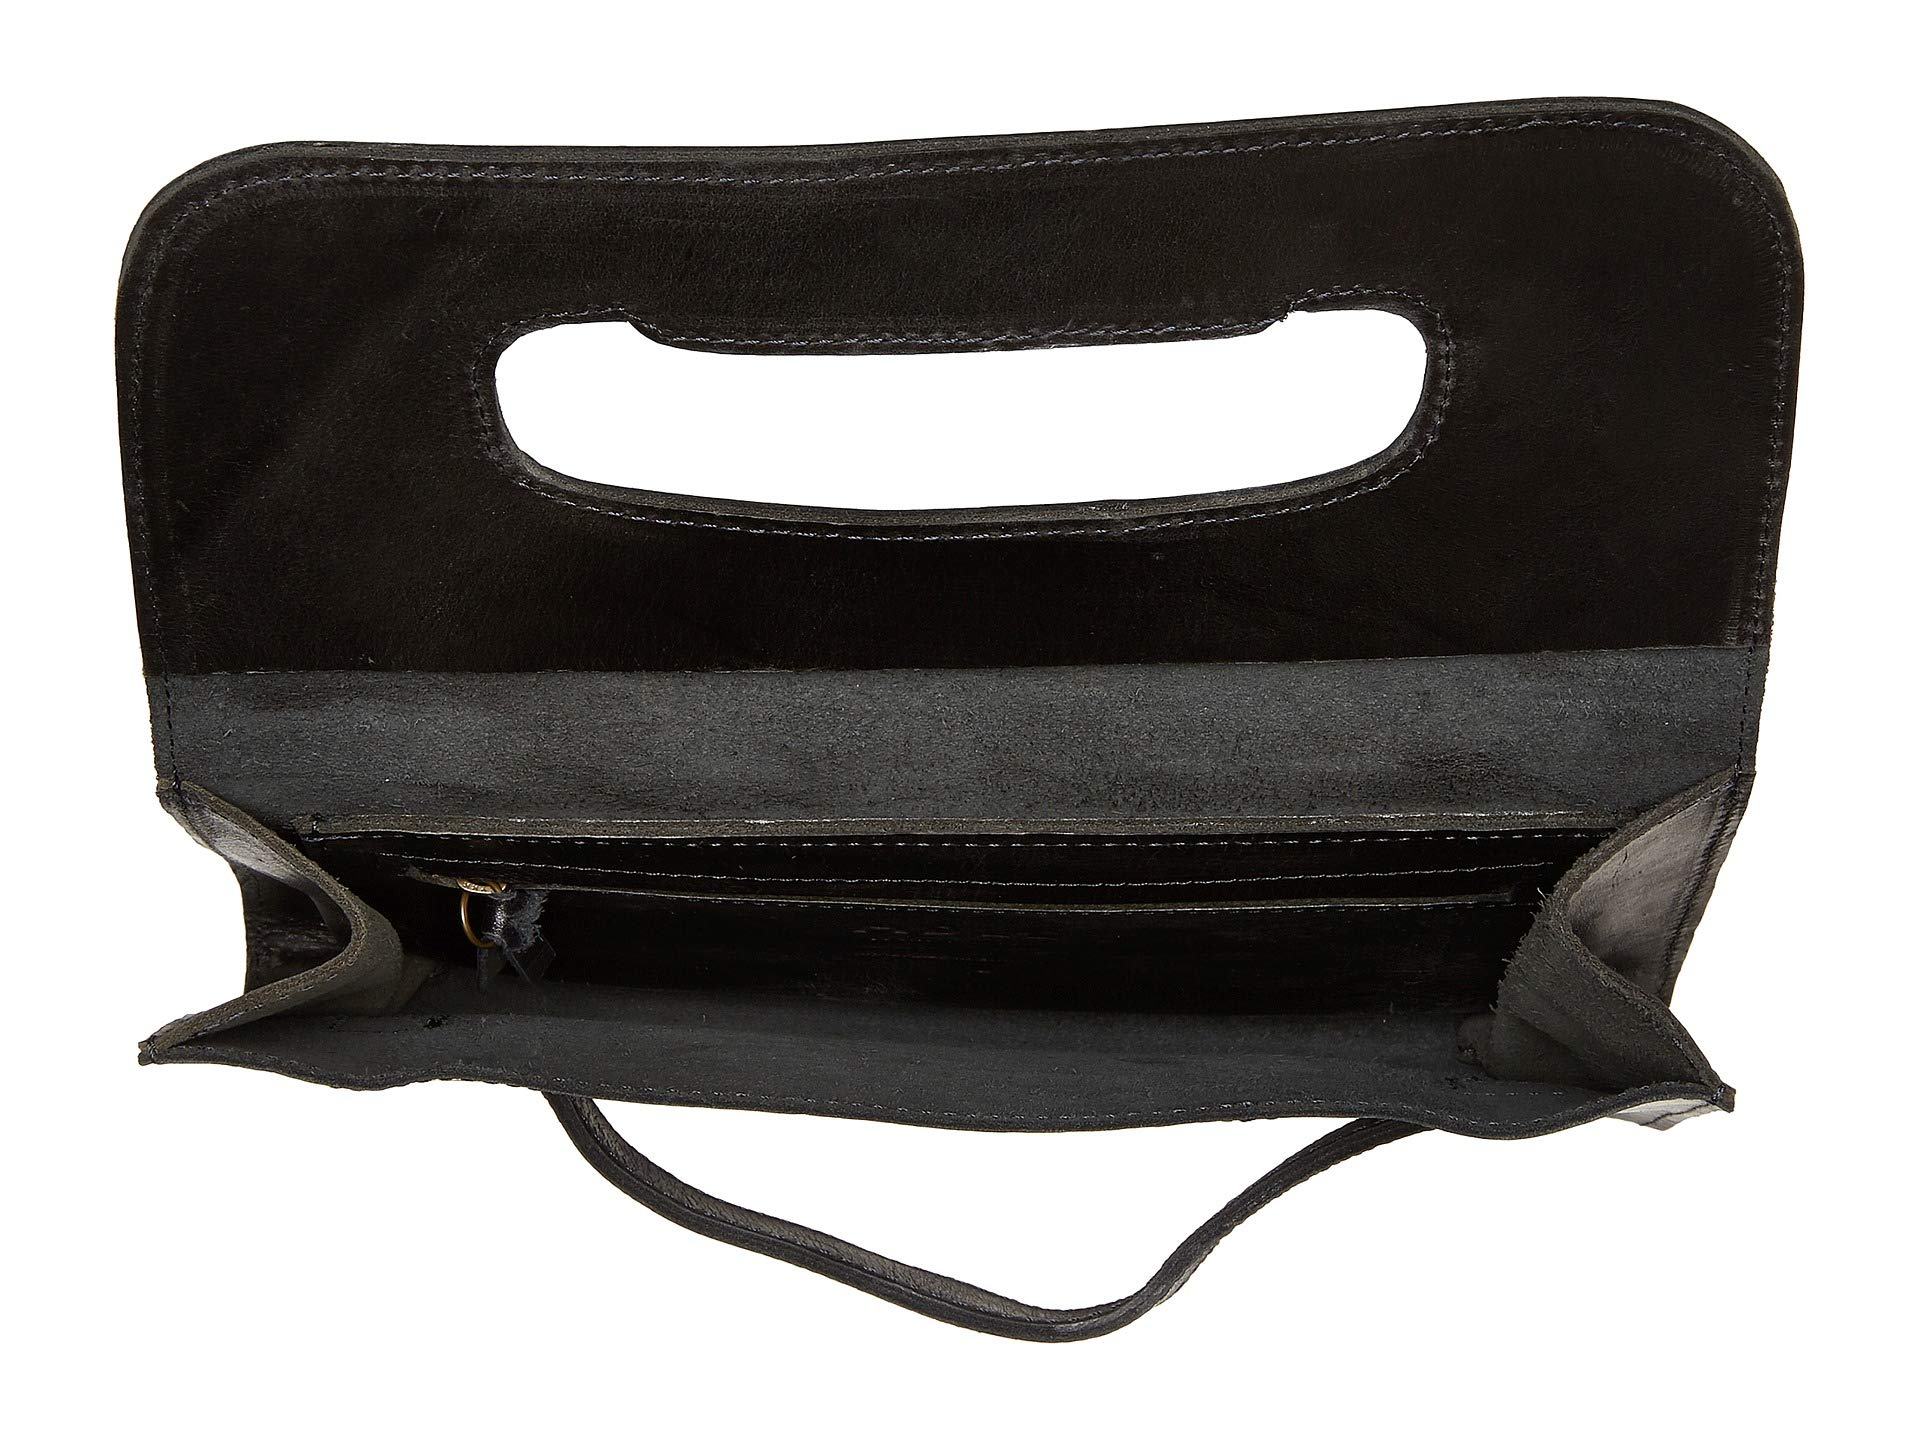 Mare Black Able Clutch Able Handle Mare wqqIXd8r